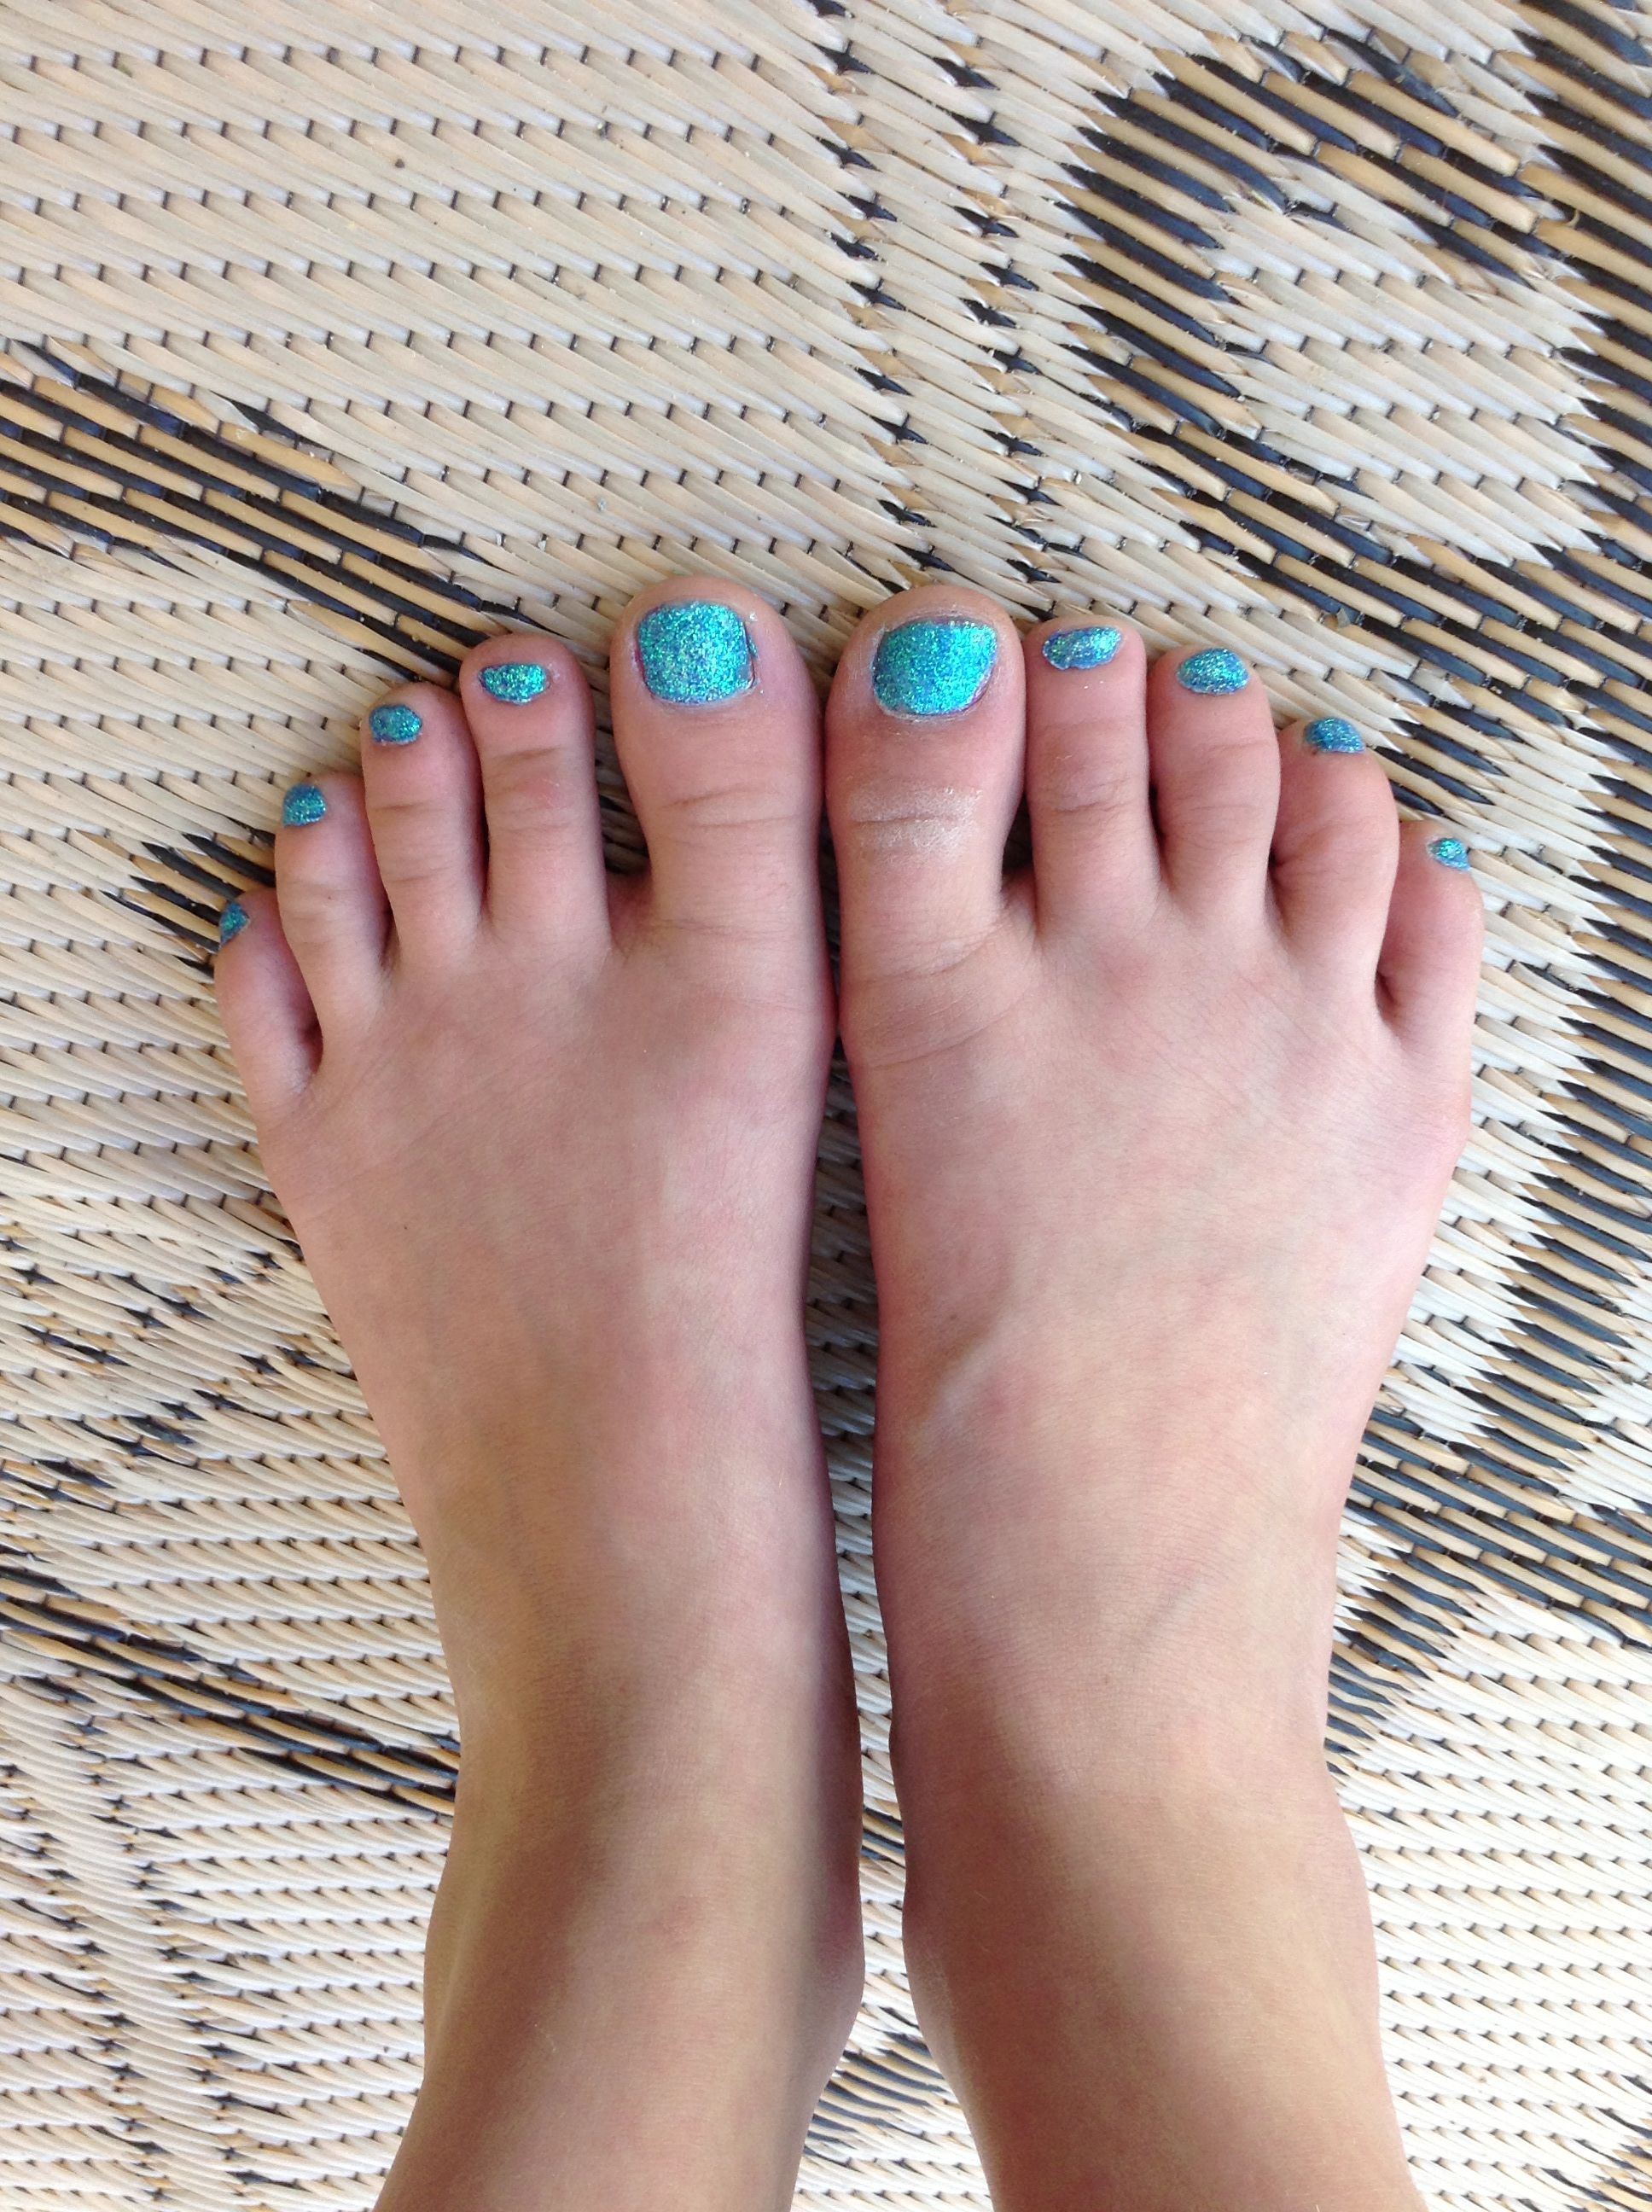 Diy glitter toes you will need any color of glitter